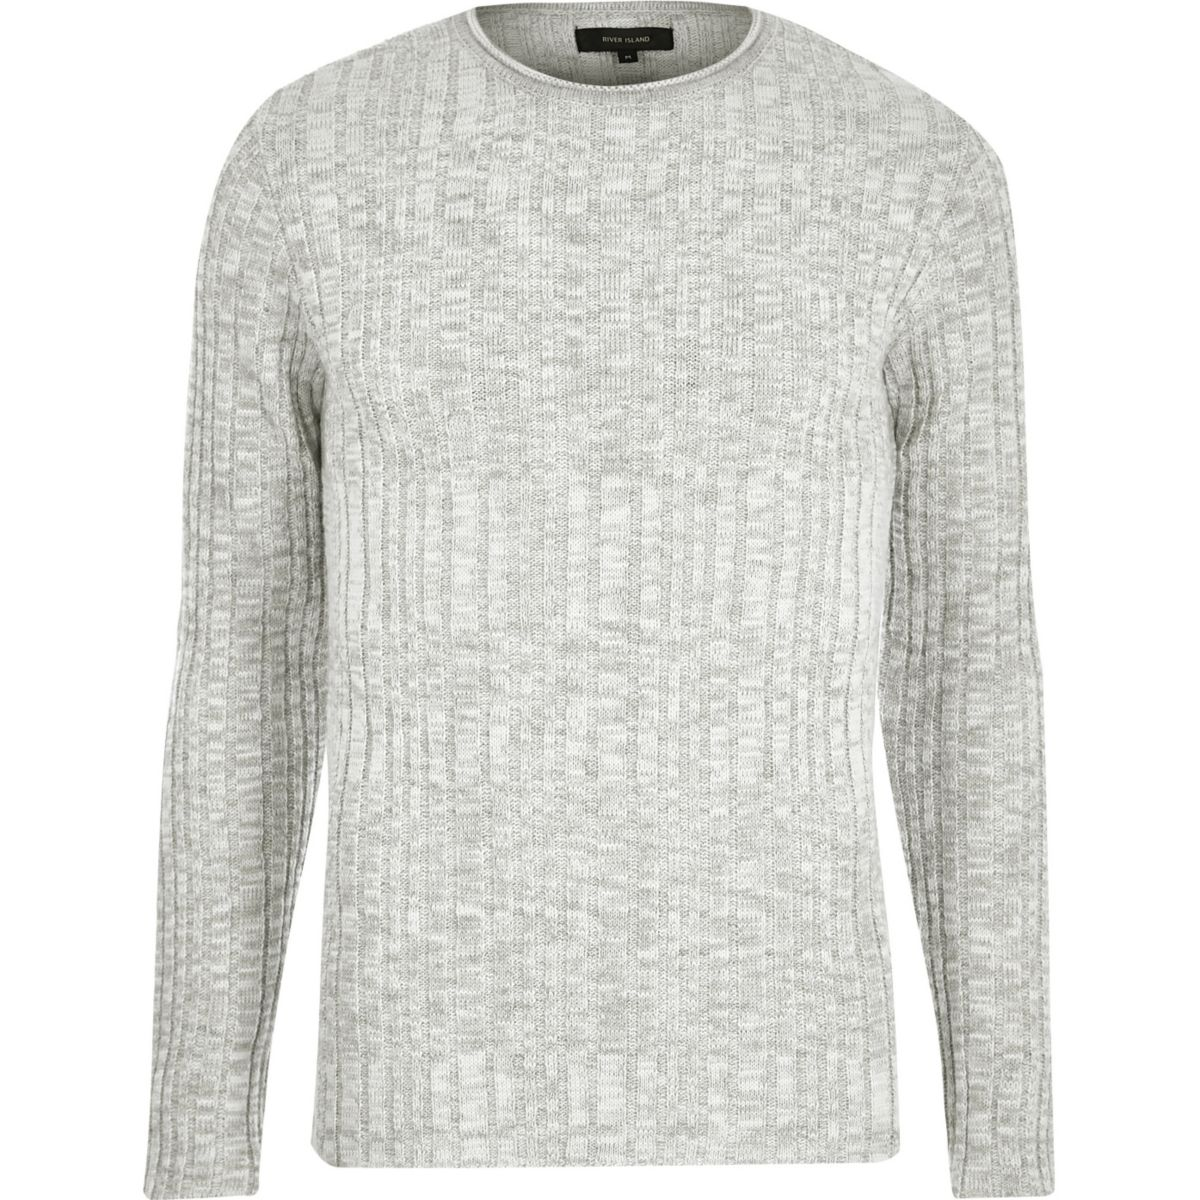 Stone ribbed skinny fit jumper